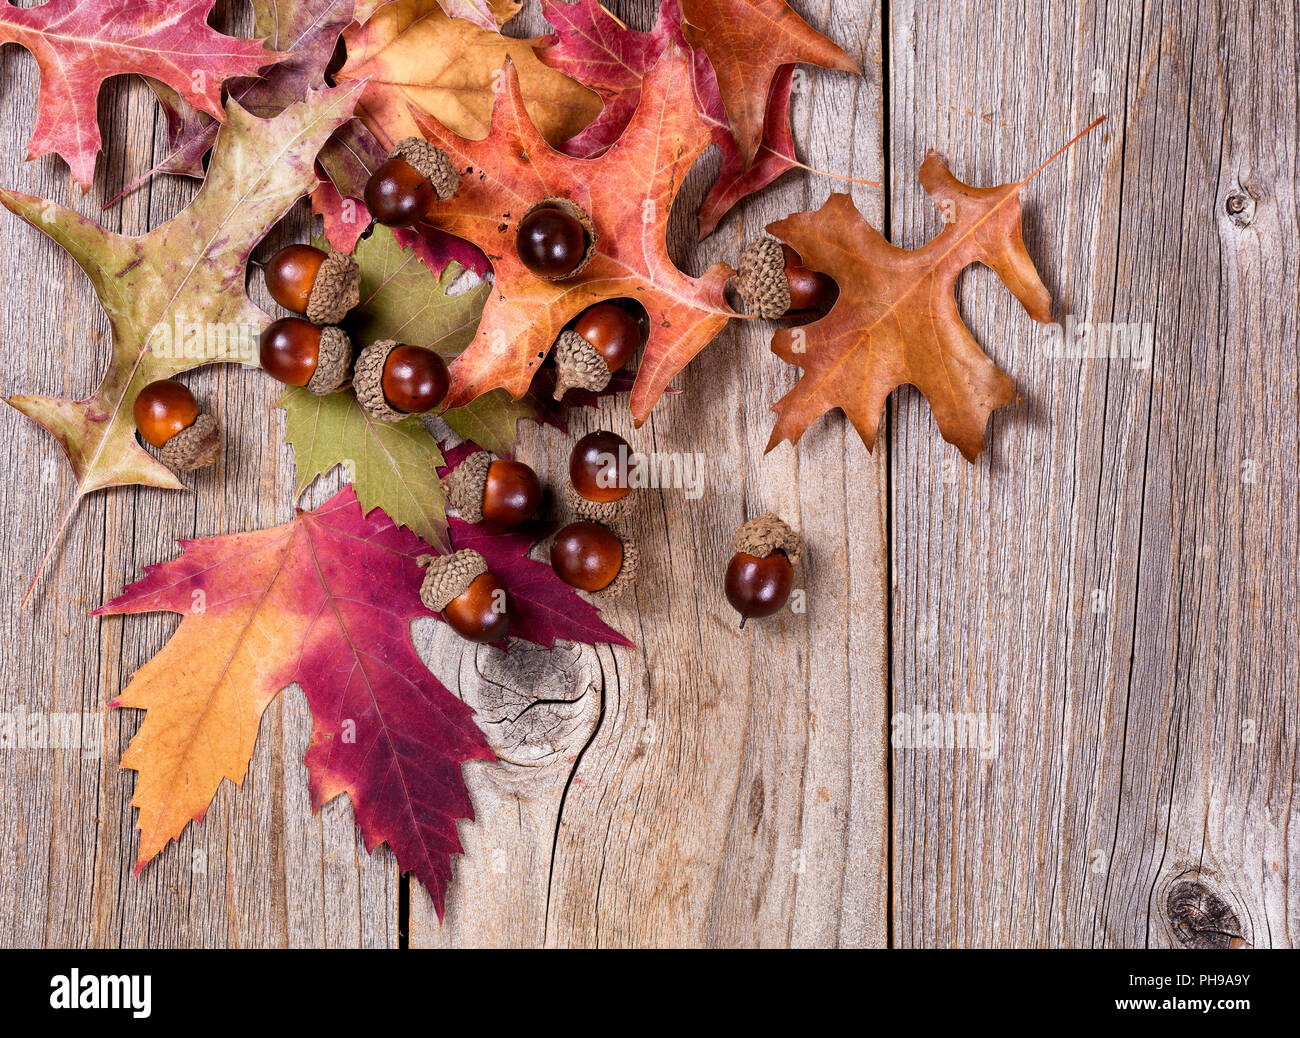 Autumn Leaf And Acorn Decorations On Rustic Wooden Boards Stock